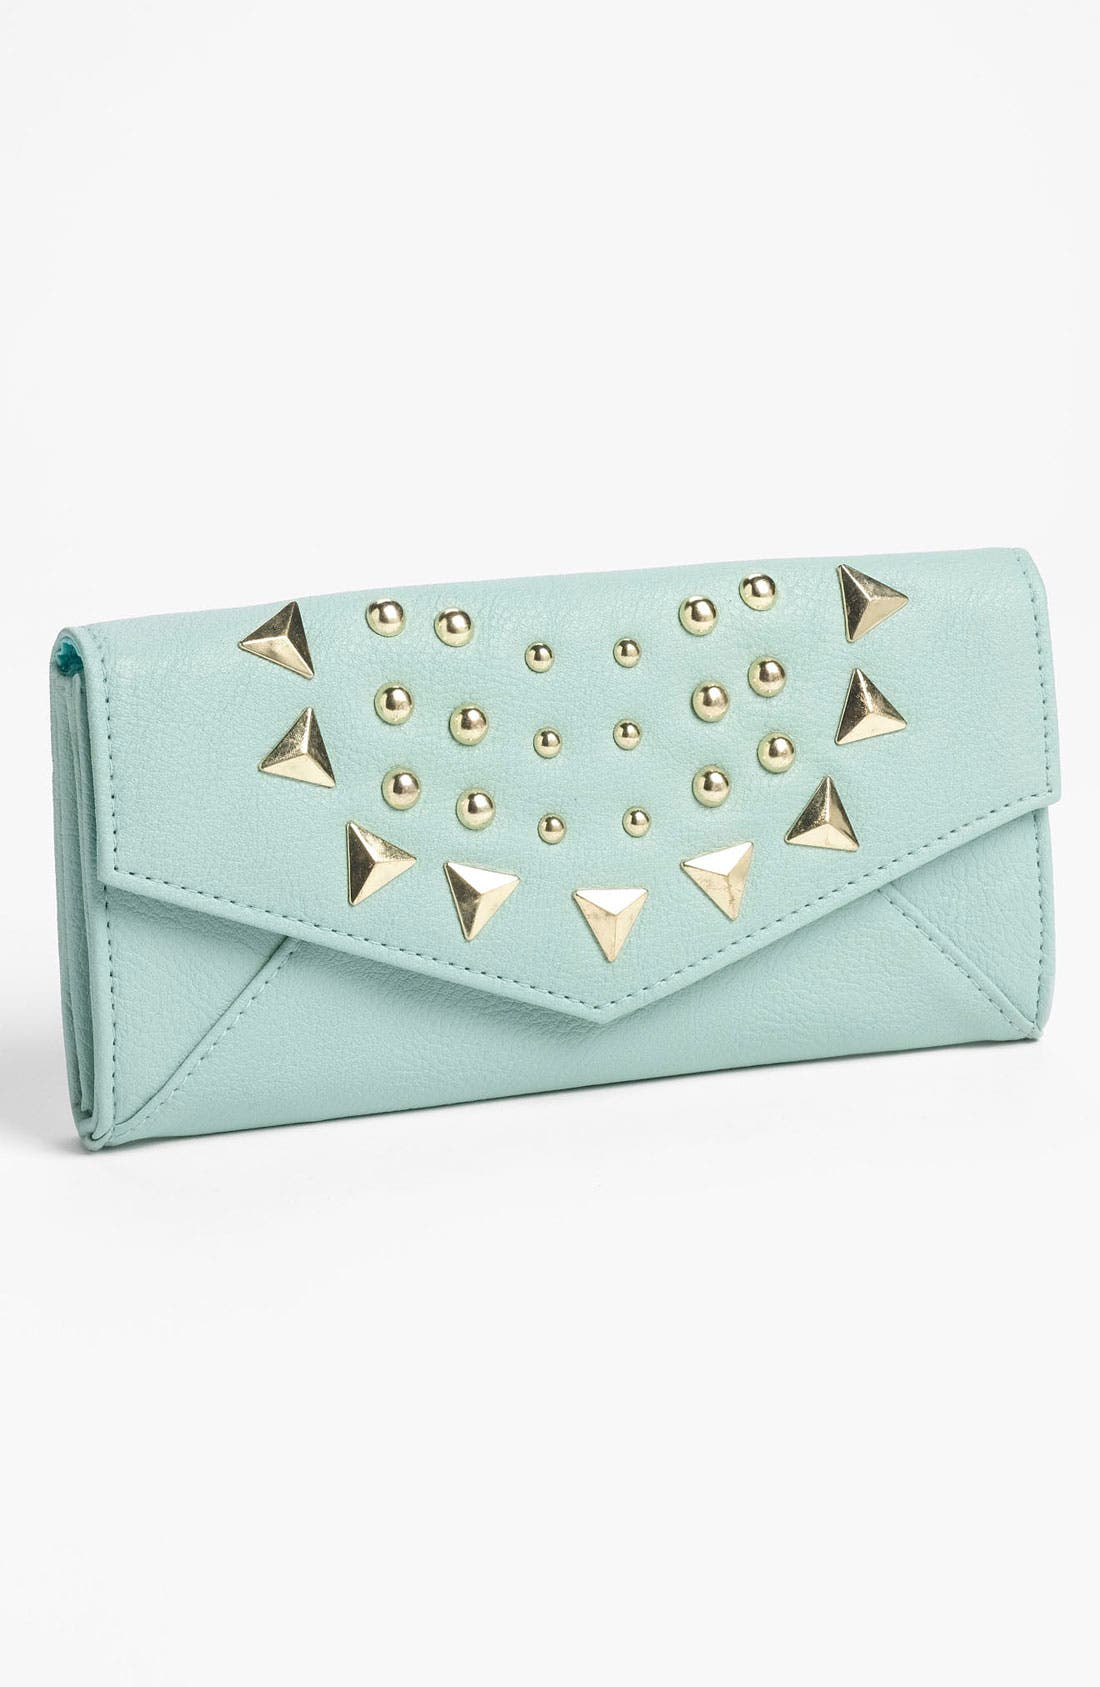 Main Image - Lulu Studded Envelope Wallet